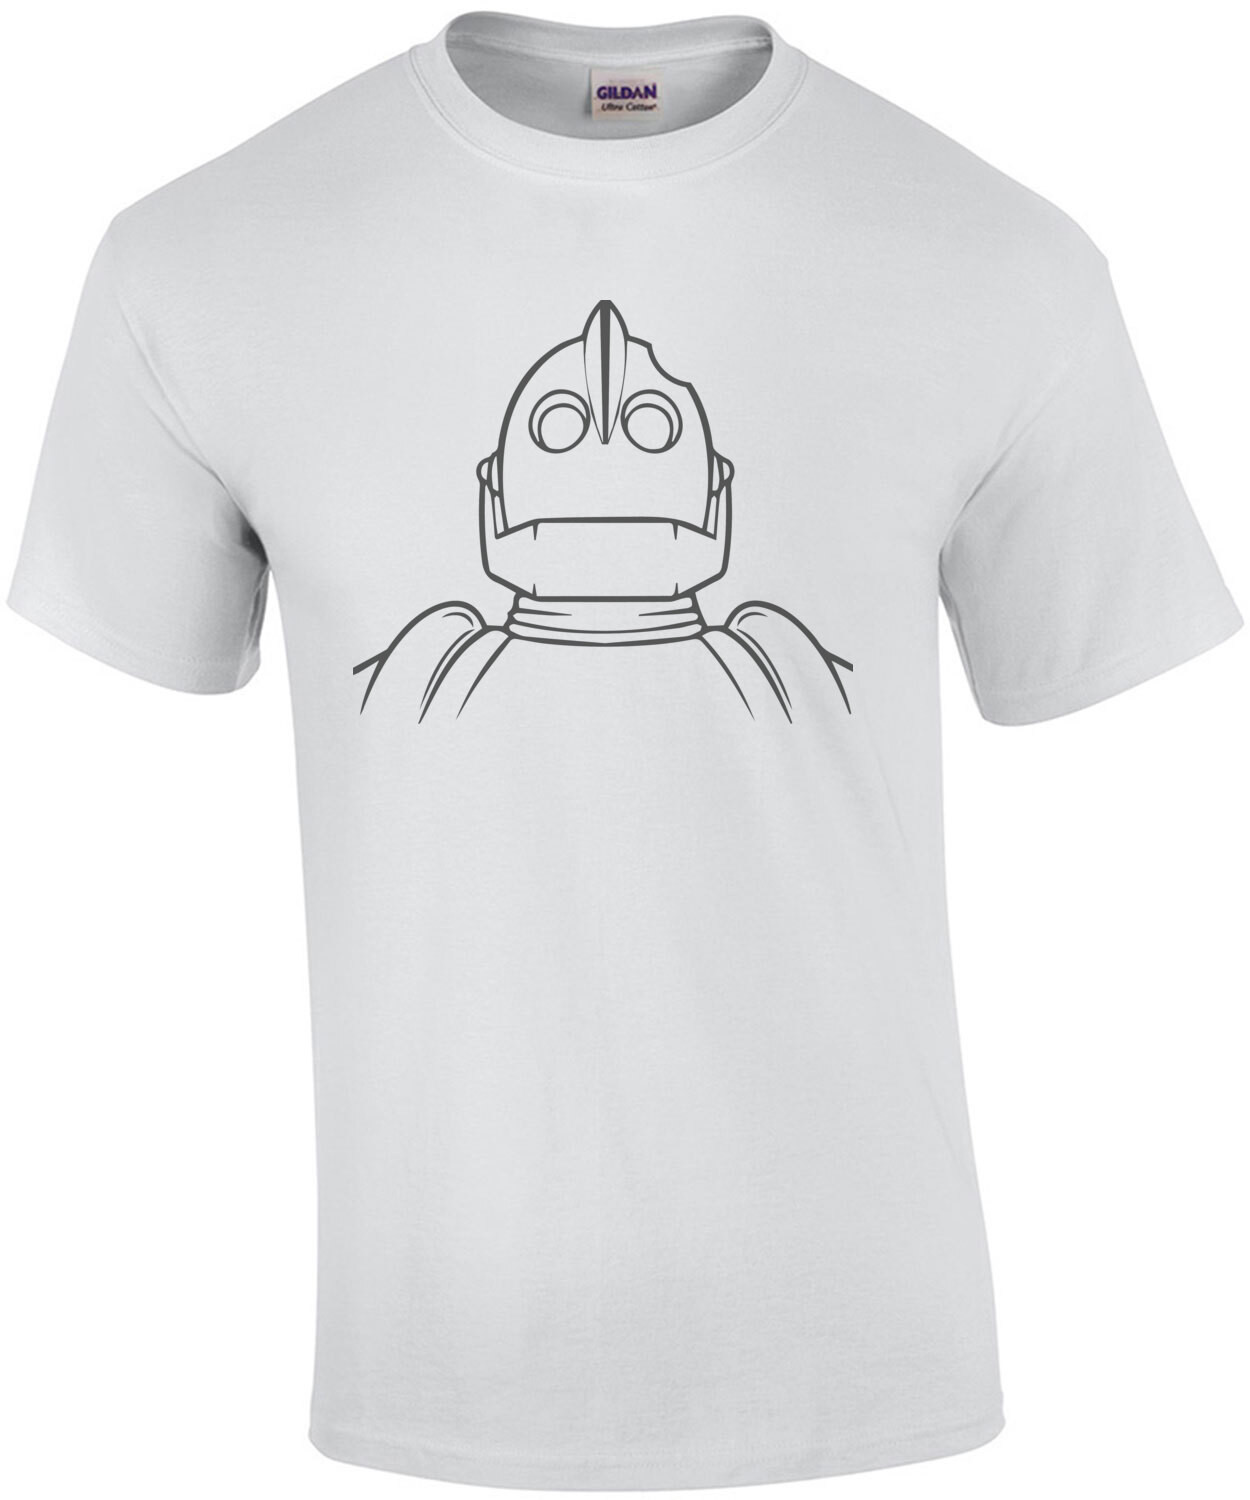 The Iron Giant - 90's T-Shirt